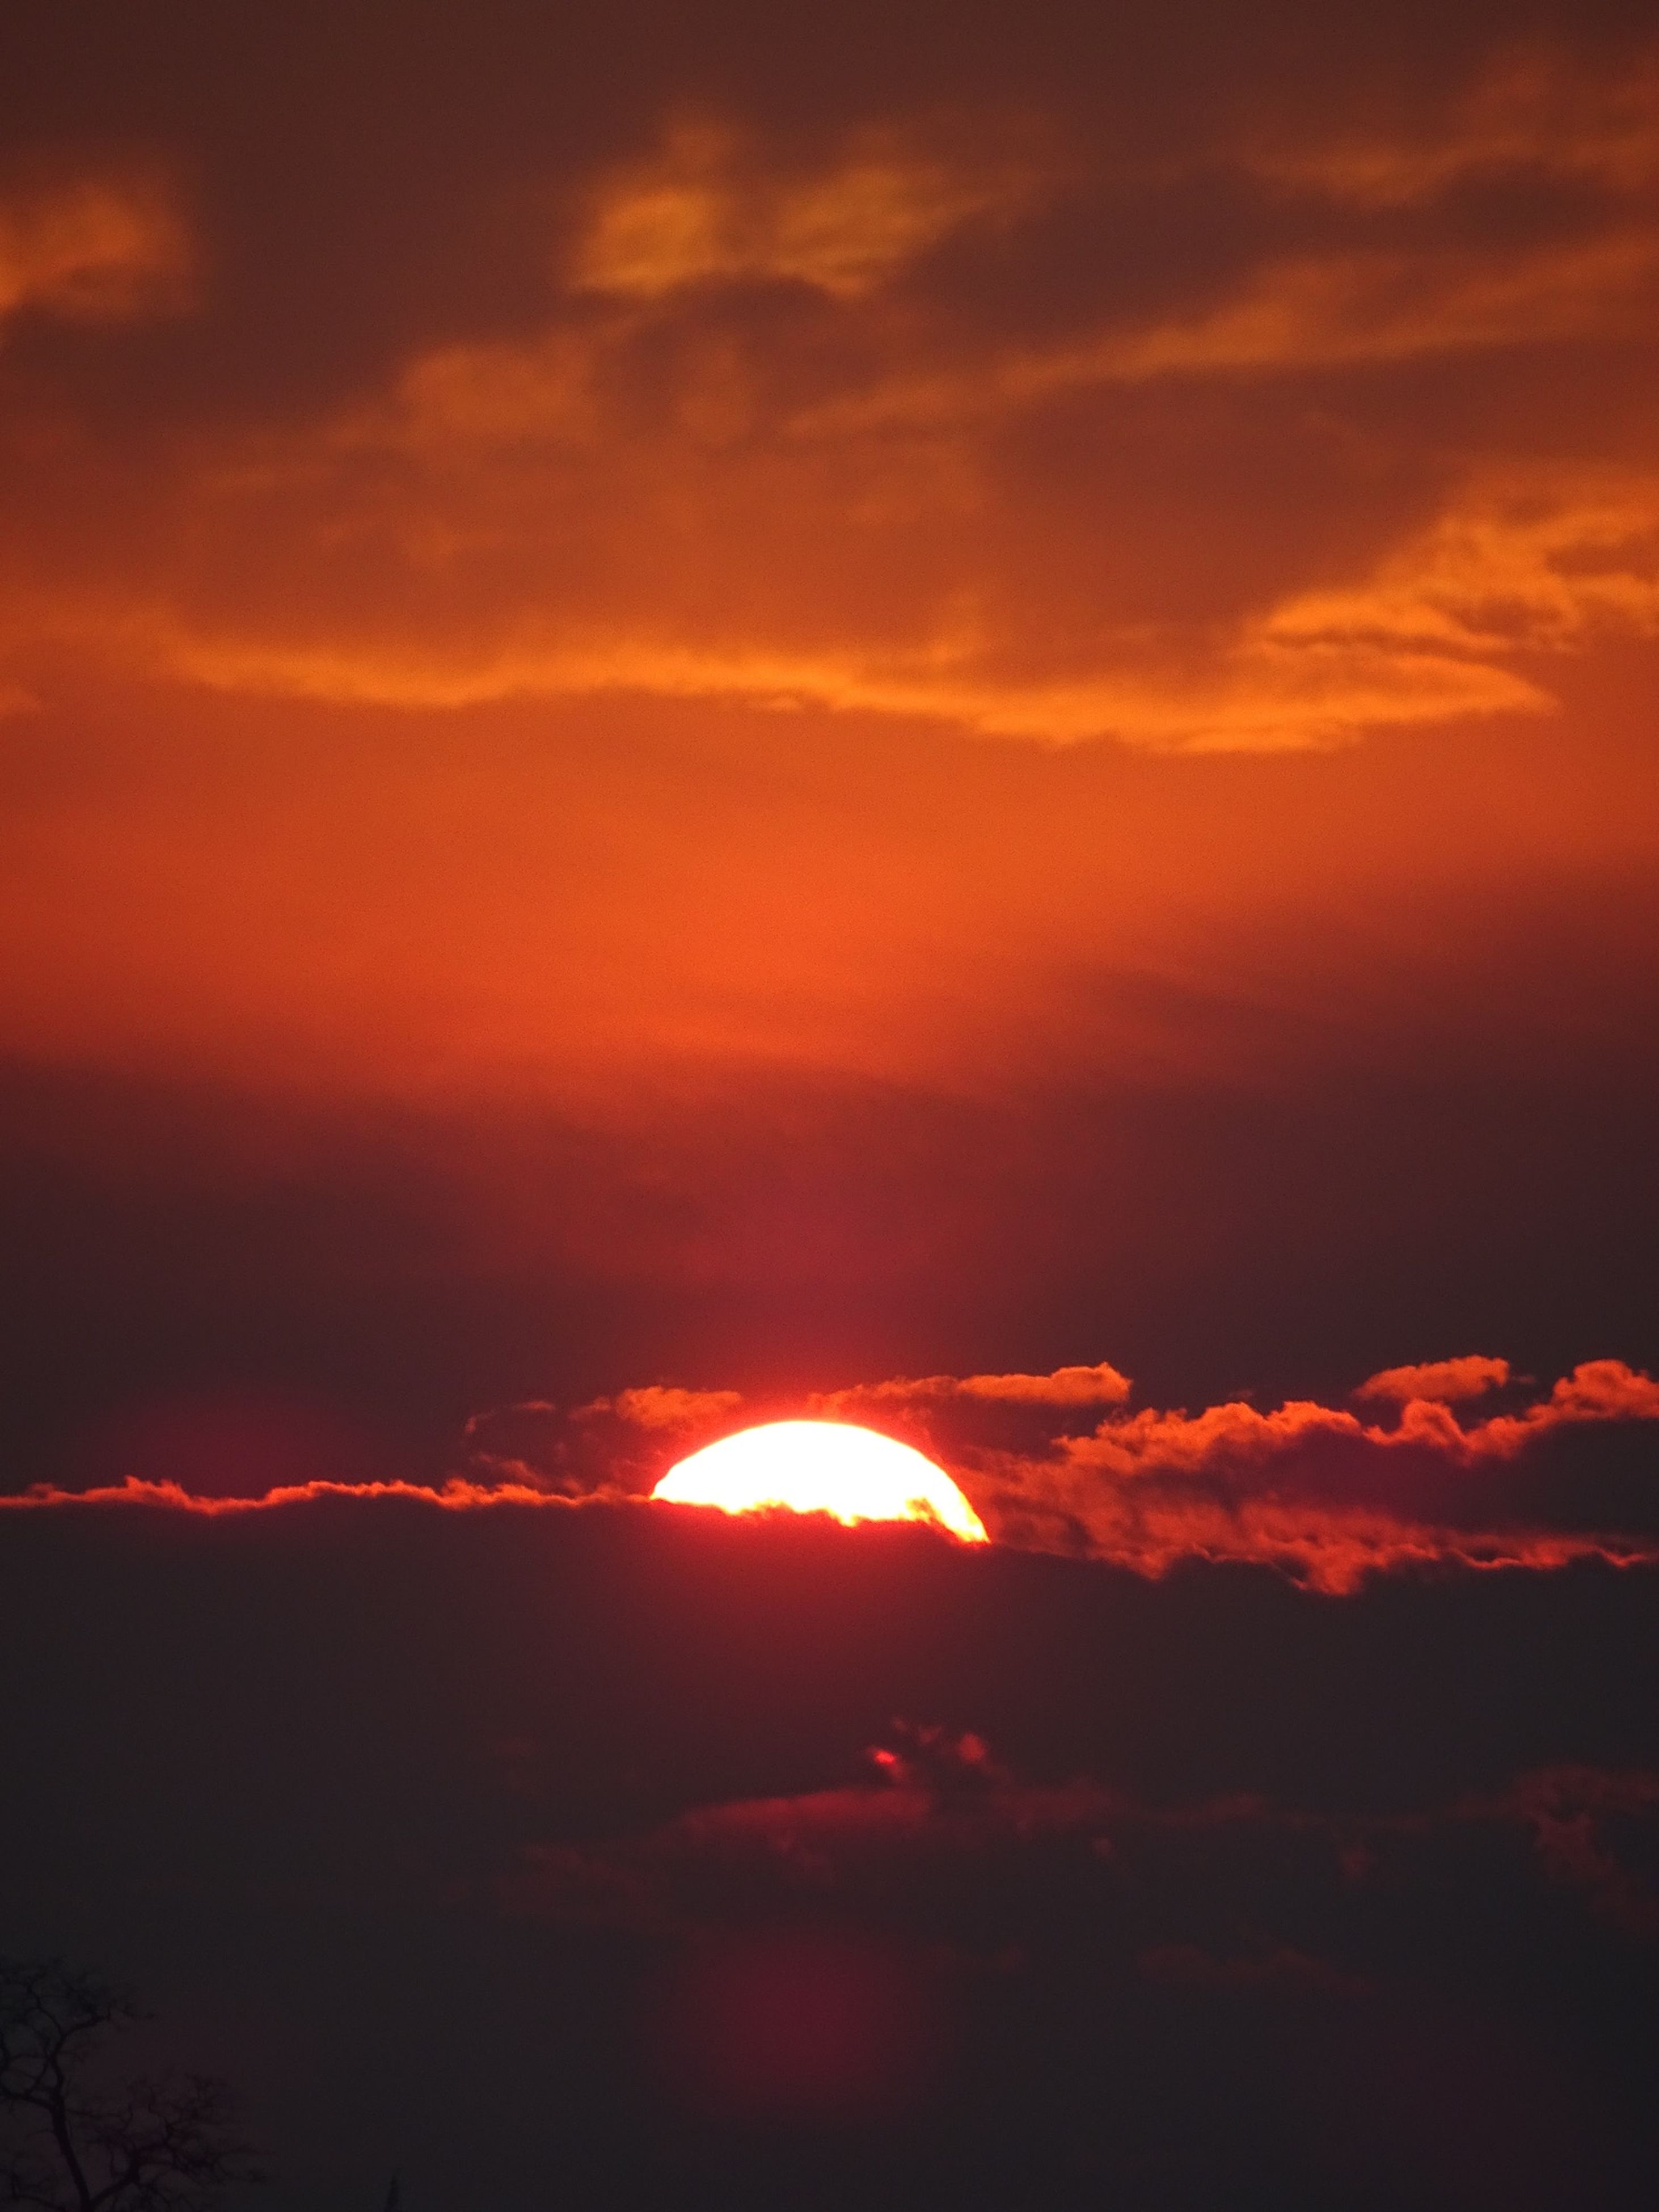 sunset, orange color, sky, beauty in nature, scenics, tranquility, silhouette, sun, tranquil scene, cloud - sky, idyllic, nature, dramatic sky, low angle view, majestic, cloud, outdoors, cloudy, atmospheric mood, no people